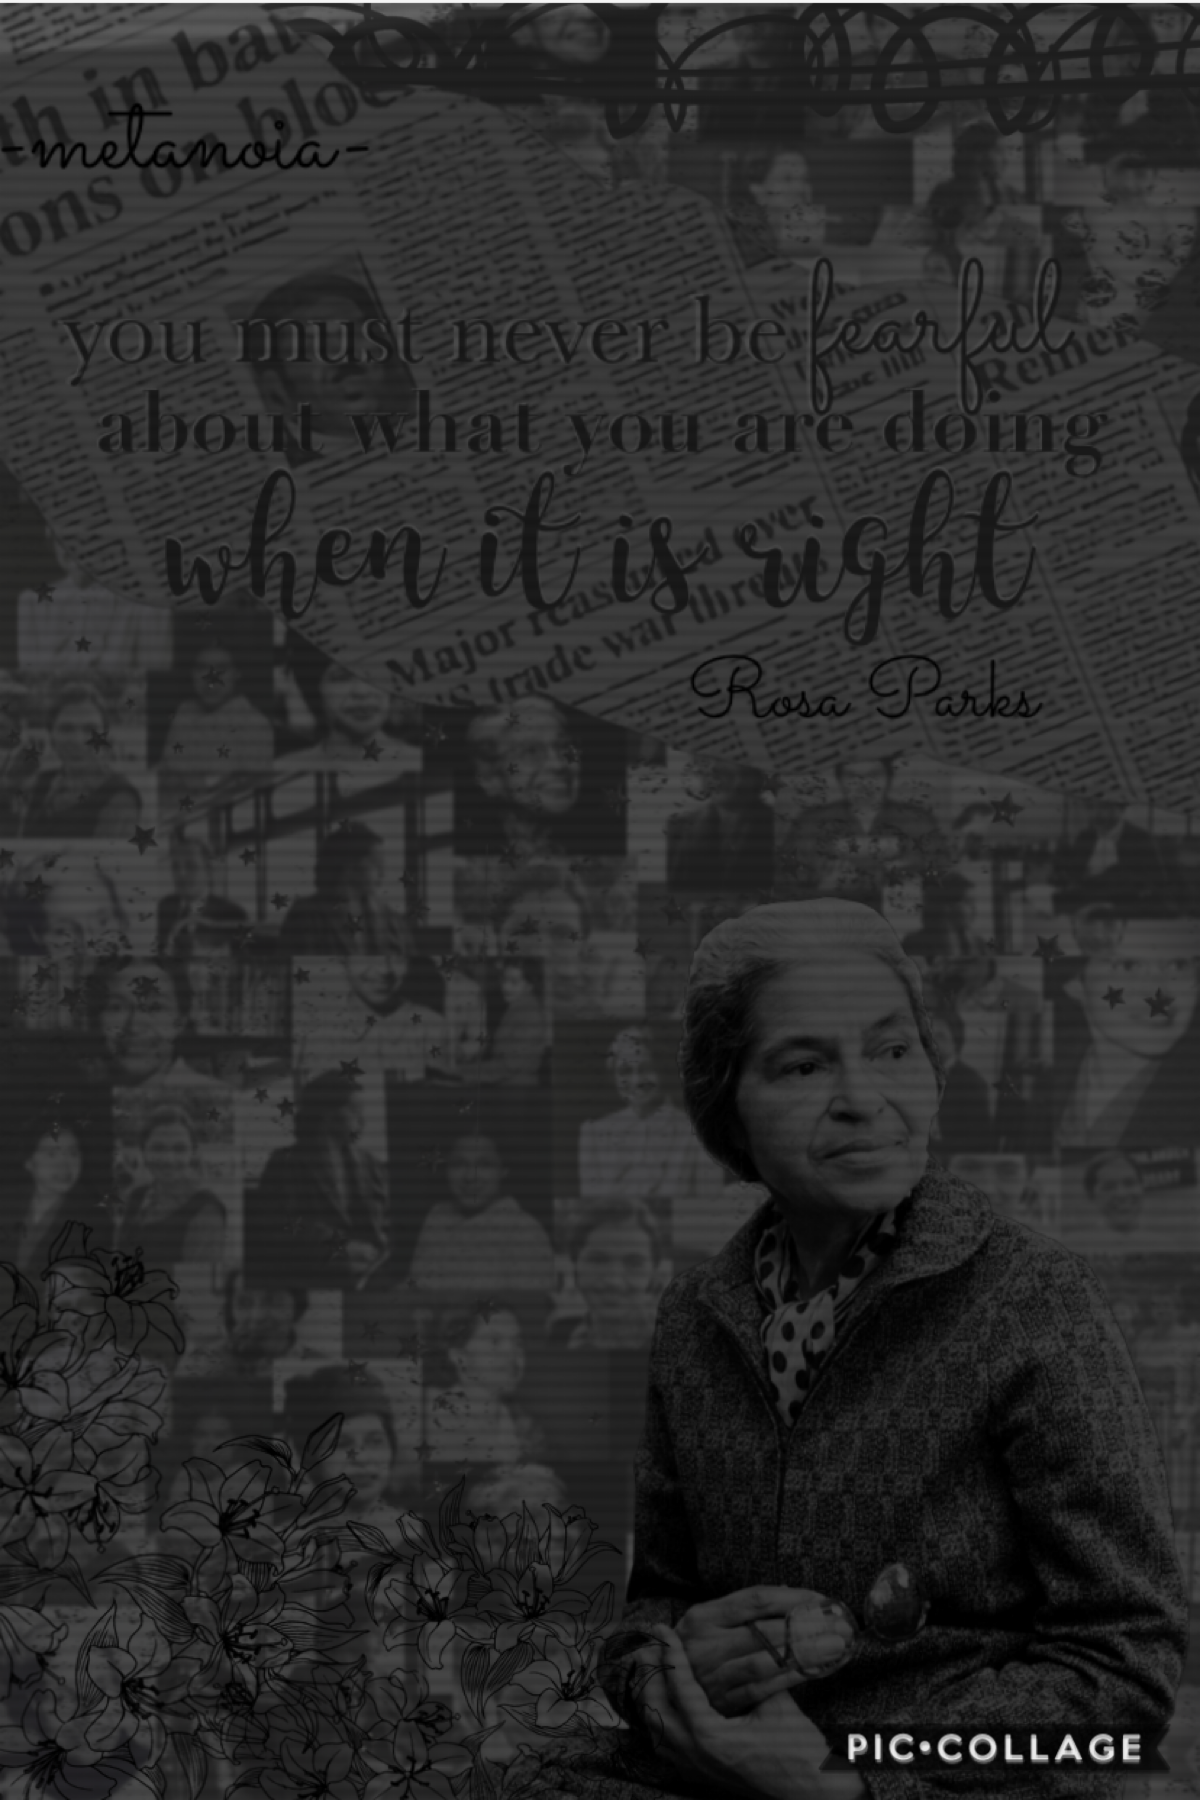 ✊🏿tap✊🏿 This is my Rosa parks collage for ocean's black history month series (go follow her bye she's super sweet). Next up is euph0ria. check remixes for a little information thingy ocean made ☺️